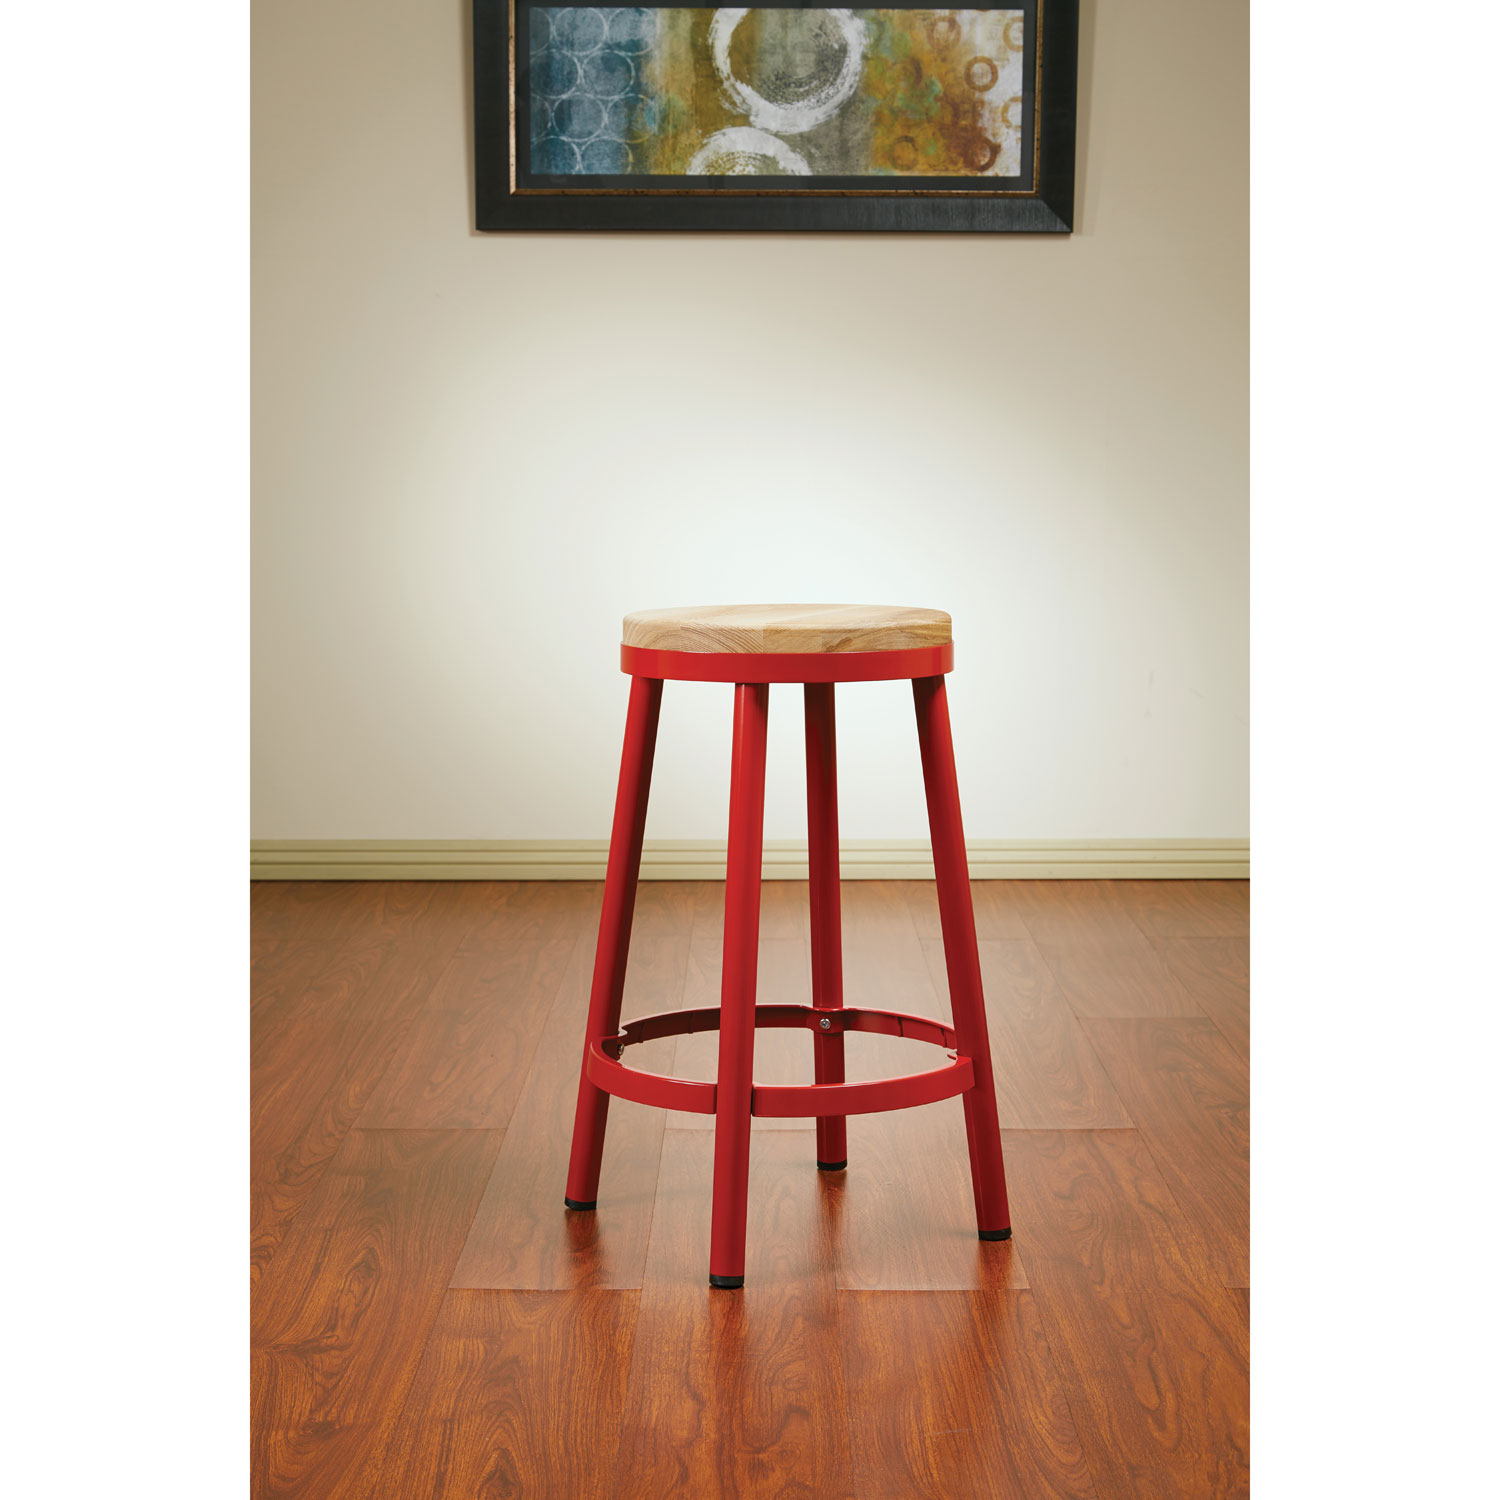 Bristow contemporary counter height bar stool red online only